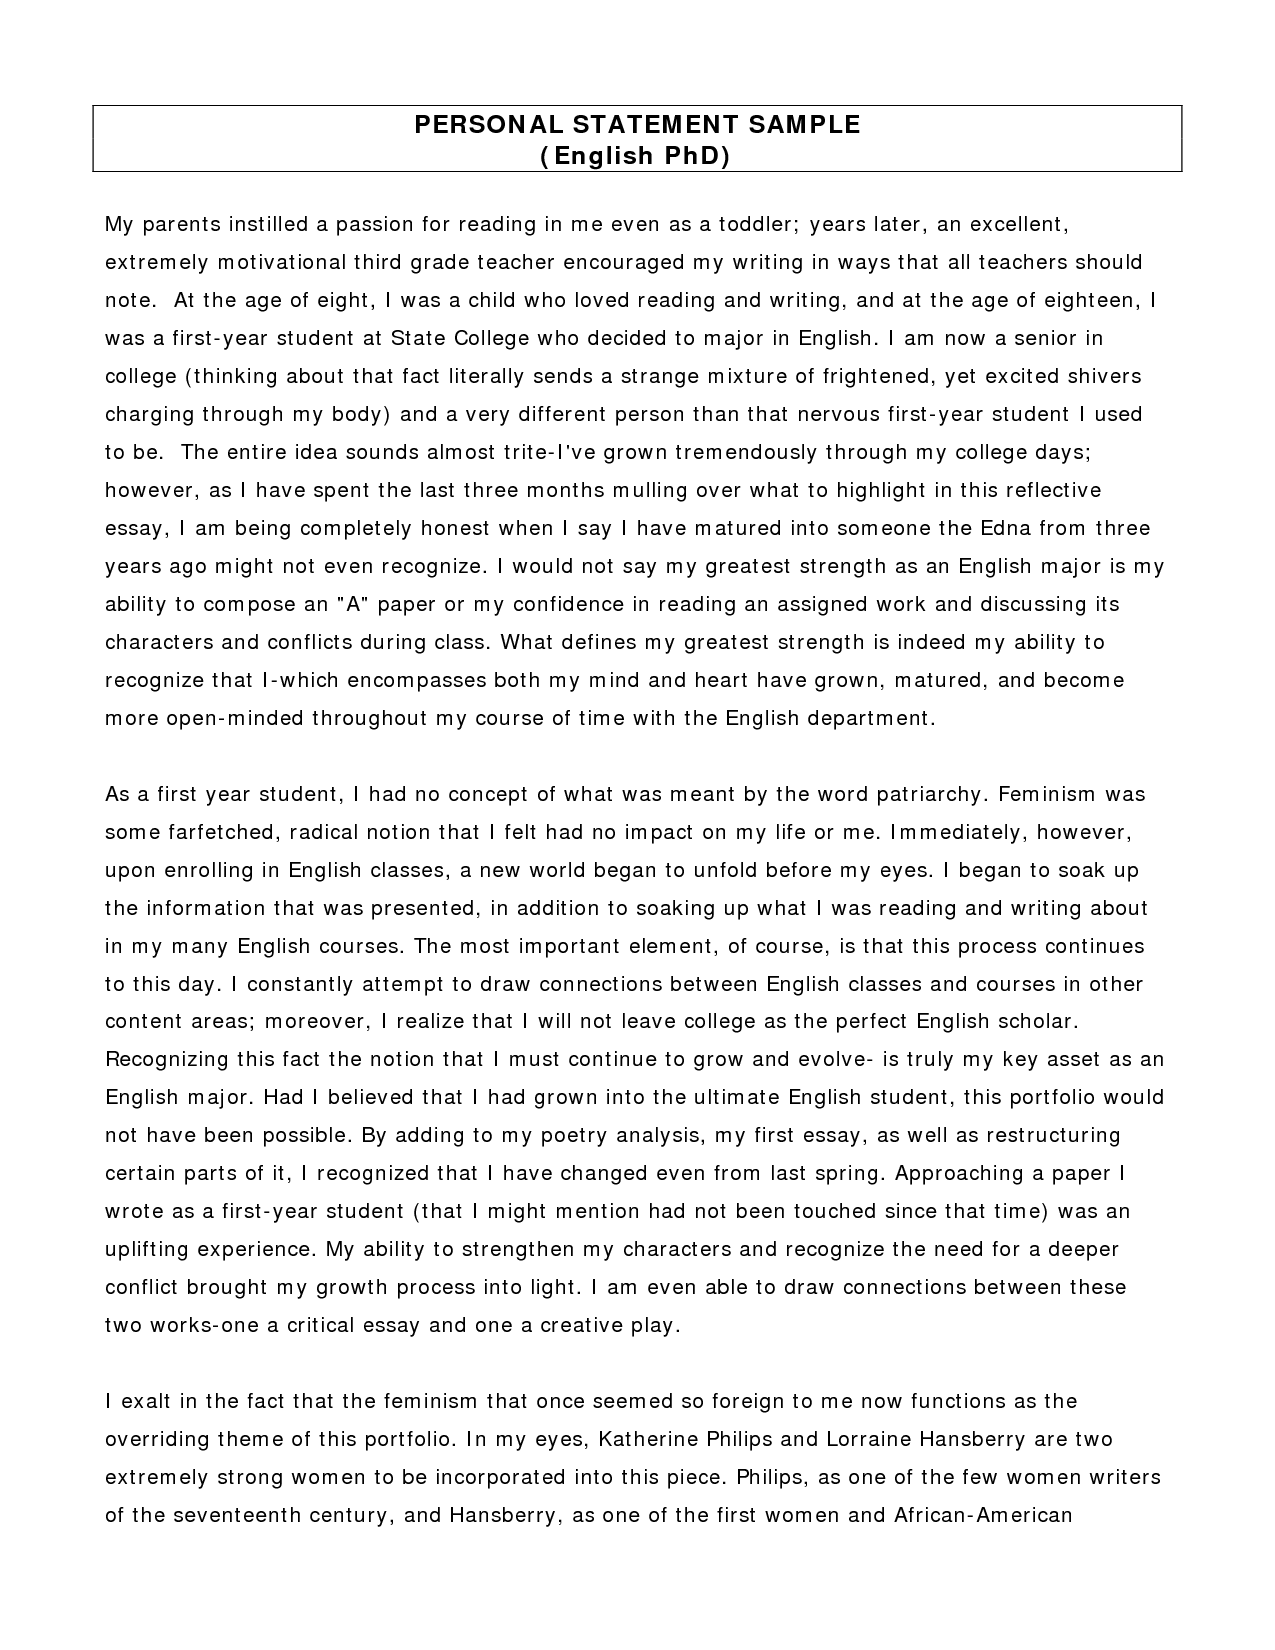 sample personal statement essay Below is a pdf link to personal statements and application essays representing strong efforts by students applying for both undergraduate and graduate opportunities.